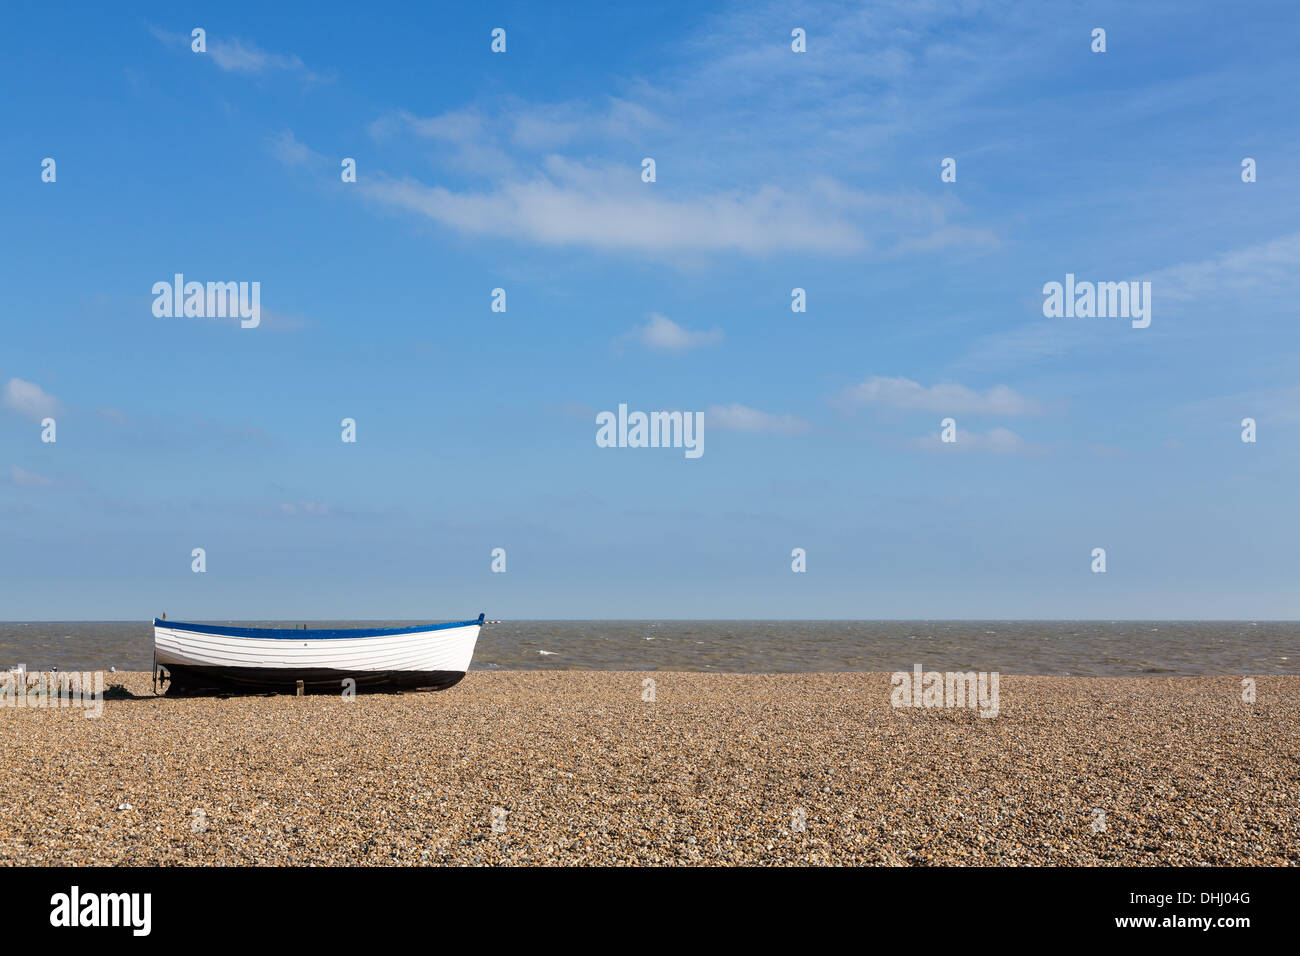 Aldeburgh beach in Suffolk, East coast of England, Uk with old wooden boat on the shingle - Stock Image